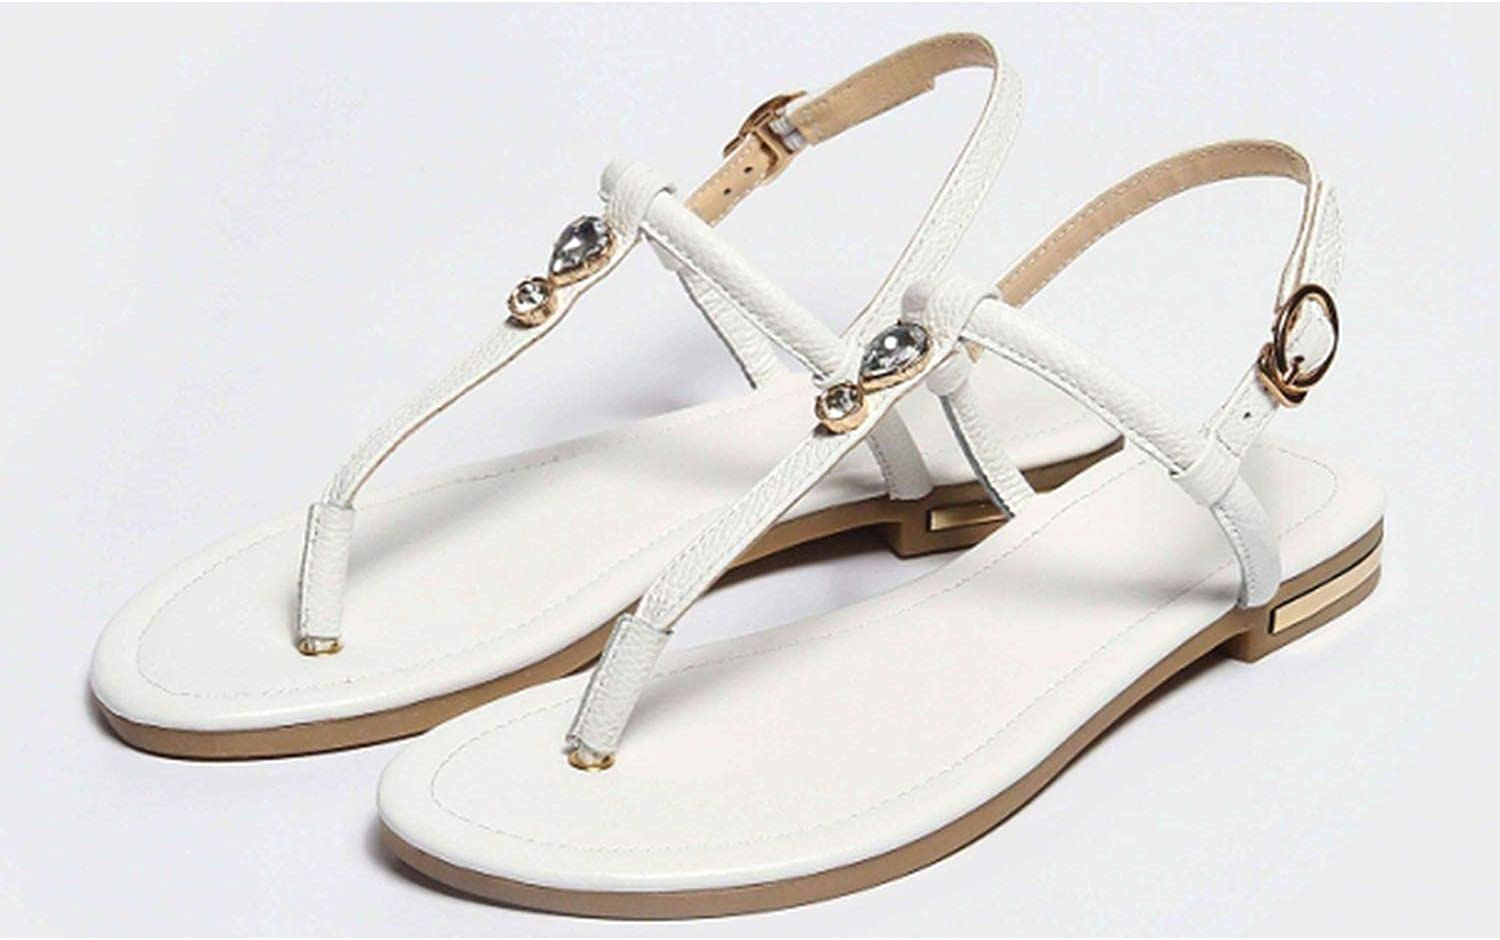 Genuine Leather Women Flats Sandals Casual Buckle Strap shoes